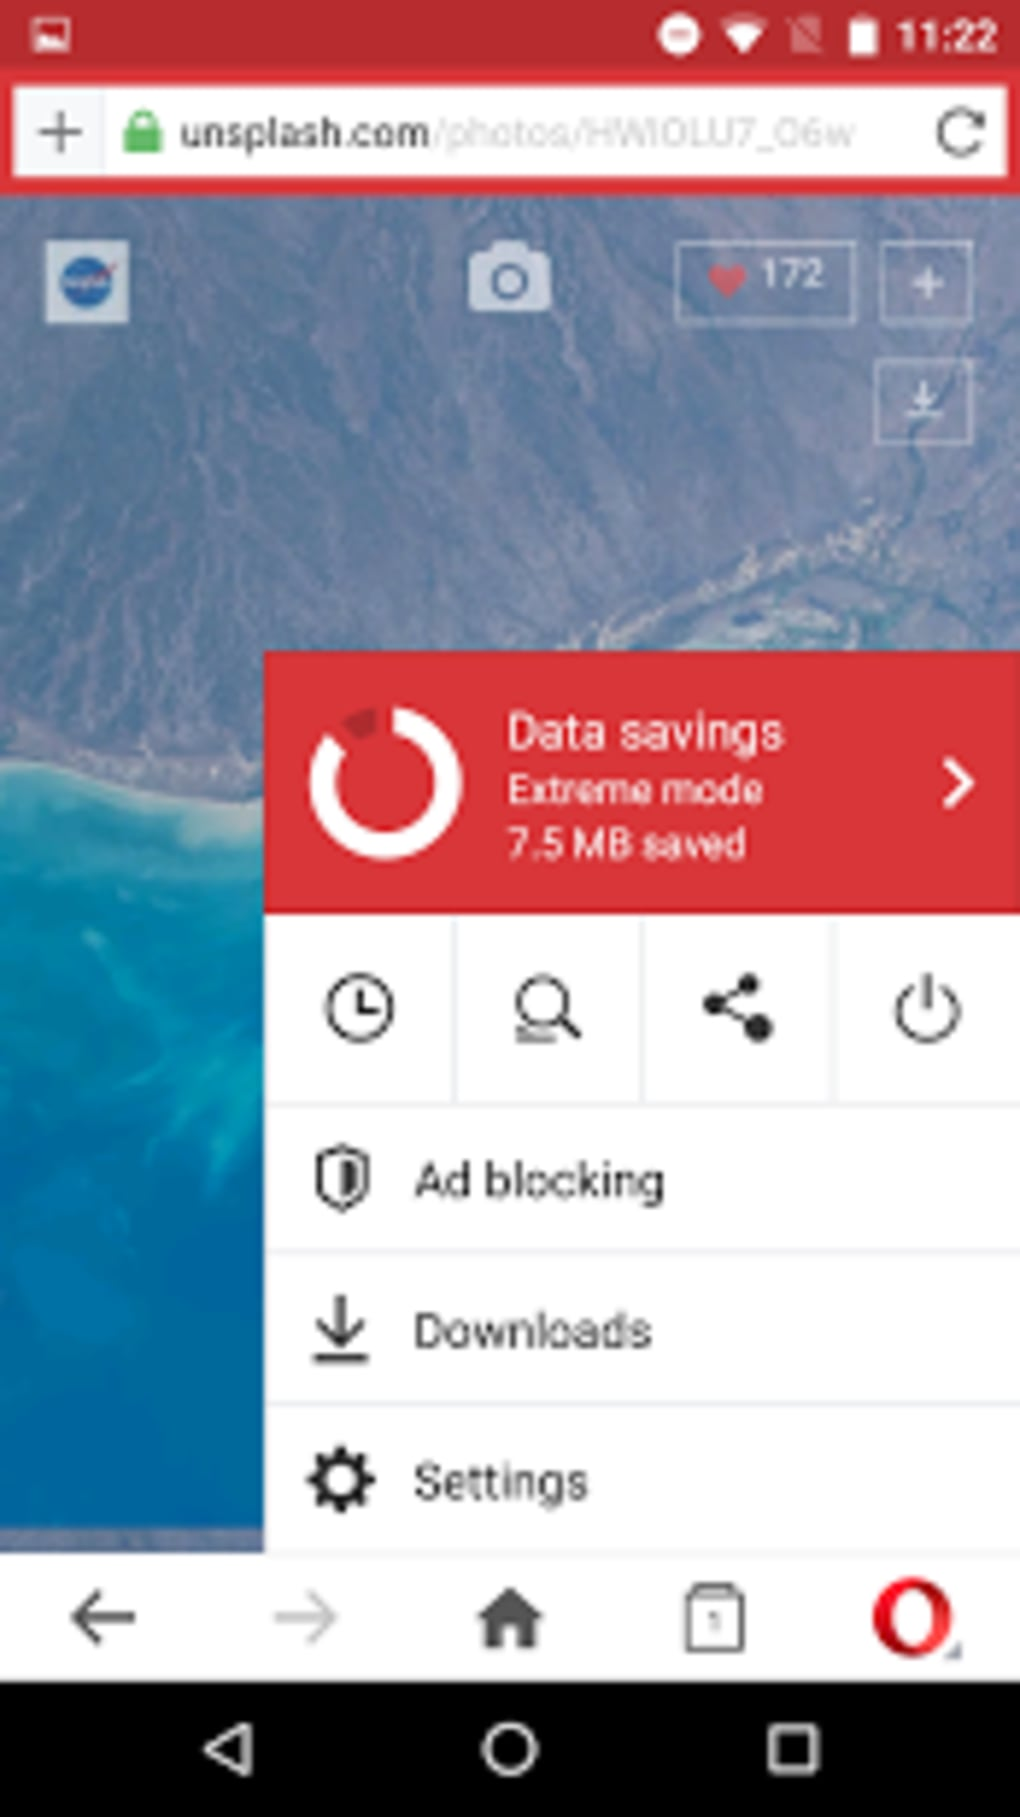 opera browser latest version download for android